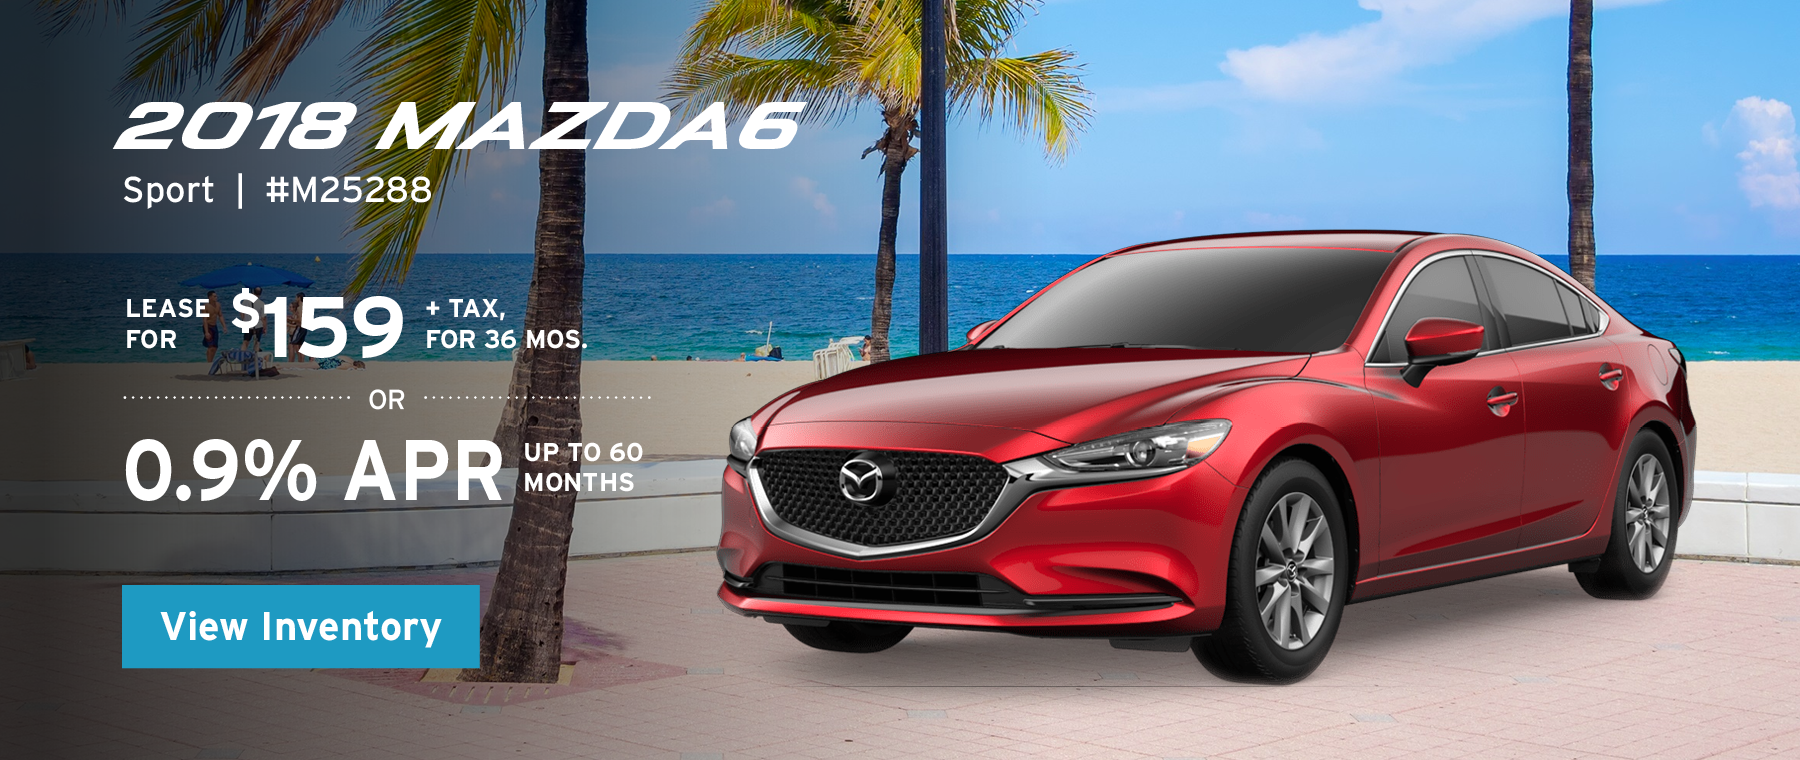 Lease the 2018 Mazda6 Sport for $159, plus tax for 36 months, or 0.9% APR up to 60 months.